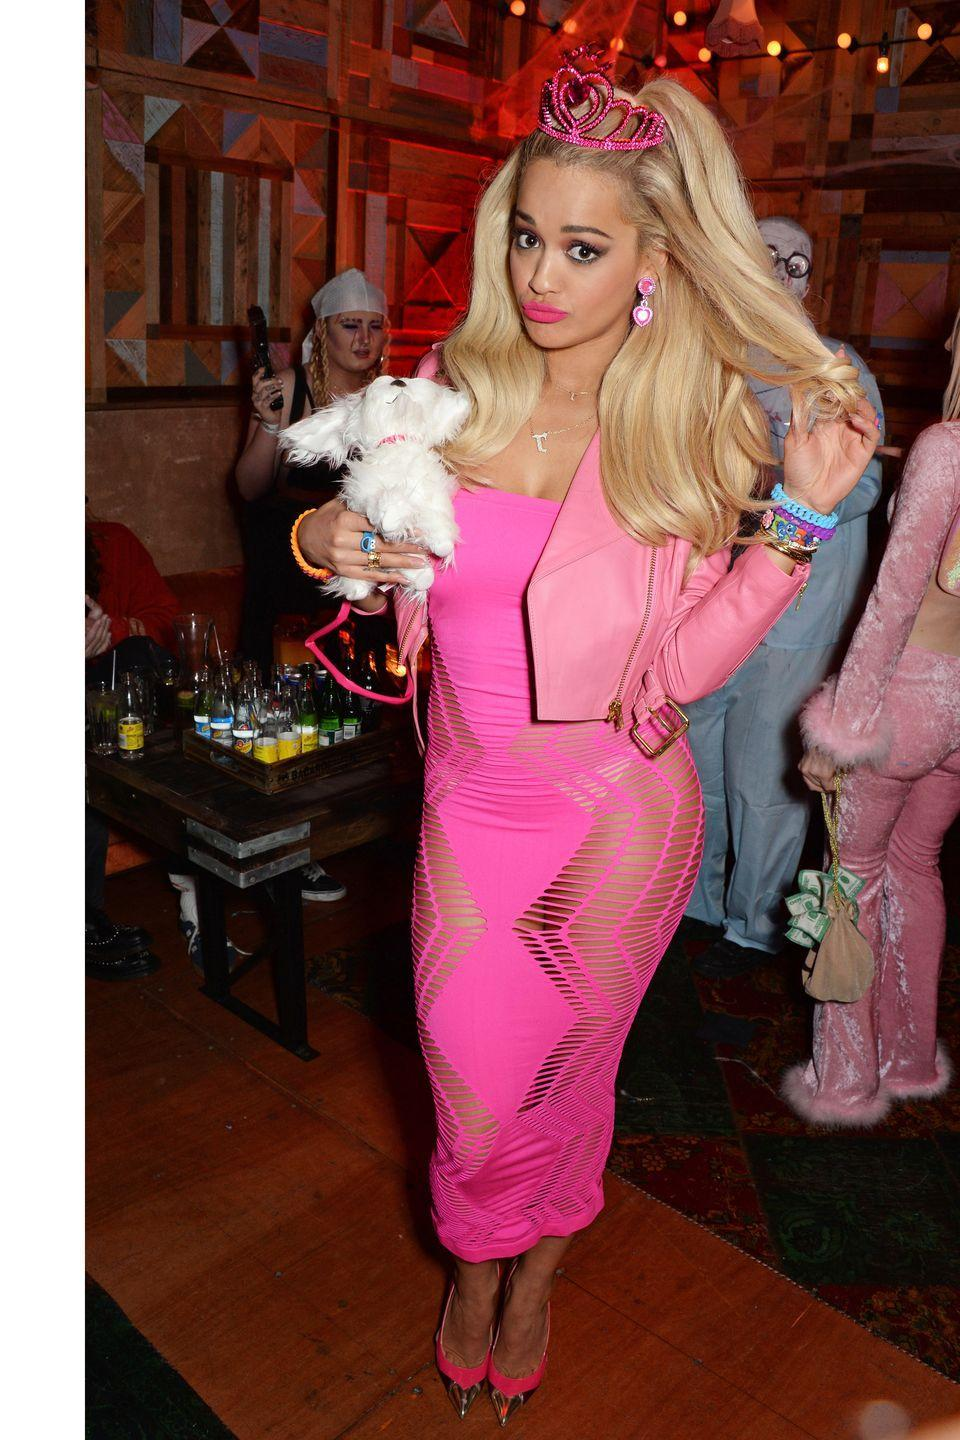 <p>When Rita Ora dressed up as Barbie in 2015, everyone applauded. That's how iconic the doll still is today. Pink, pink, plus more pink is the winning formula for this Halloween costume. Complete the look with a body-con dress and voluminous waves.</p>